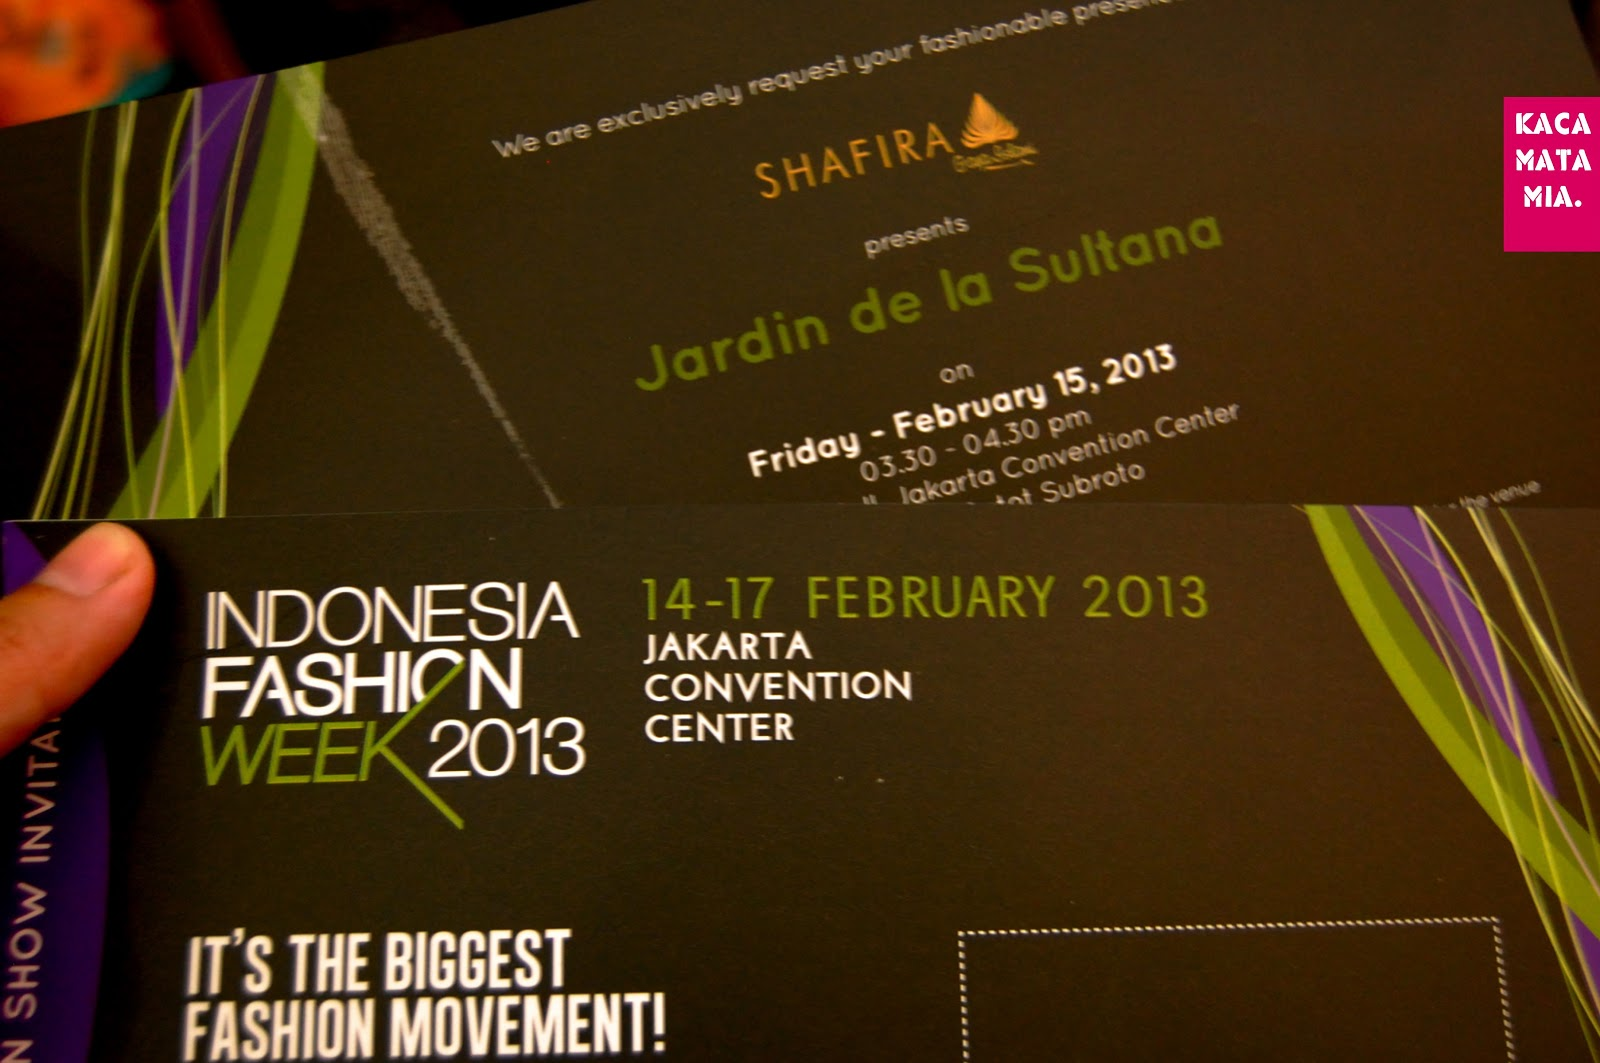 Miafauzia housewifing with style from indonesia fashion indonesia fashion week 2013 was on and i got invitations to shafira fashion show entitled jardin de la sultana i like one of this indonesia moslem brand stopboris Images